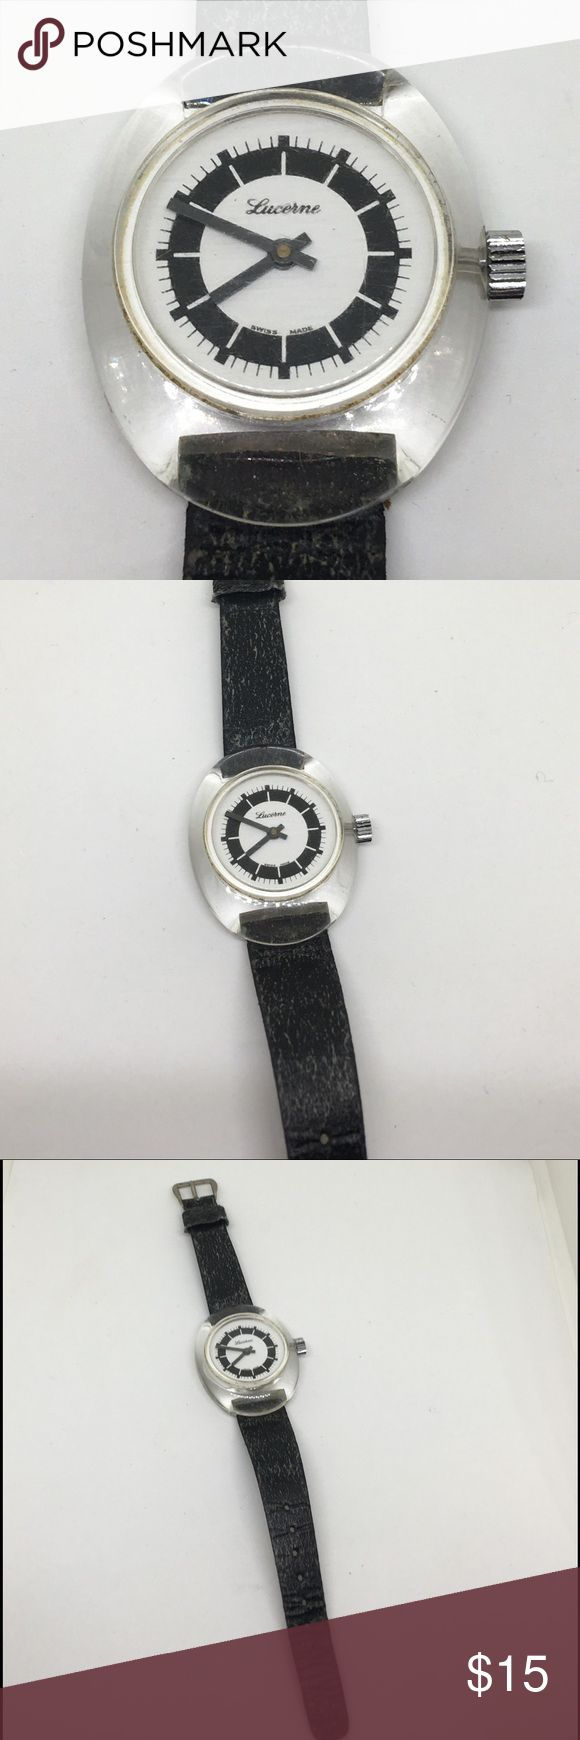 """🆕Vintage Lucerne Lucite Black & Watch A Lucerne watch in a very 80s style. 1.5"""" long and 1"""" wide clear lucite, with a black and white face. This watch doesn't need batteries; just wind and go! Works beautifully. Some wear on the band, but you can replace it if you want to. A really cool looking watch! And no batteries! What could be better!?! Lucerne Accessories Watches"""